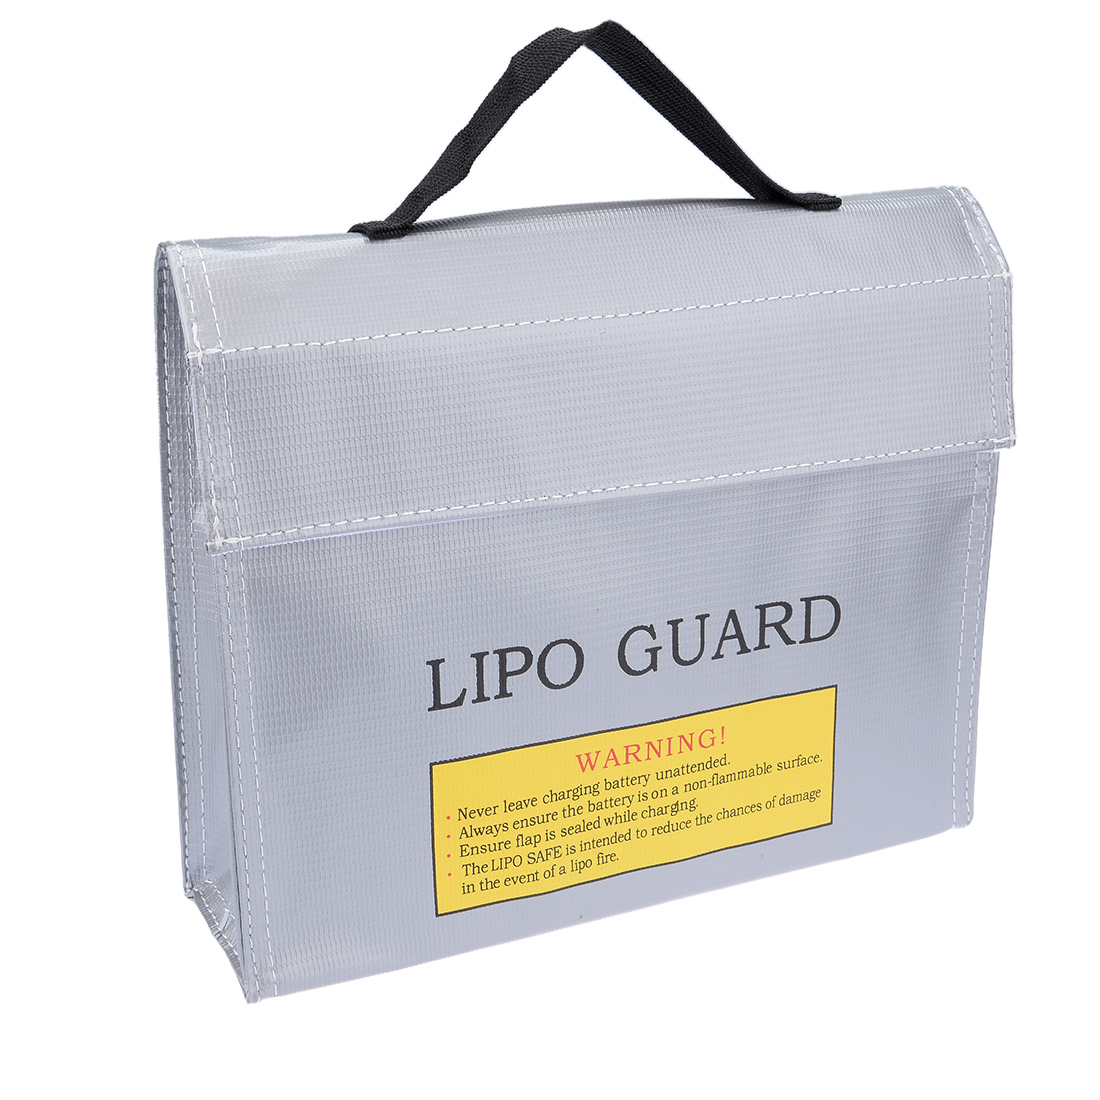 Lipo Battery Fireproof Explosionproof Bag Storage Guard Safe Charging Holder 240mm x 65mm x 180mm